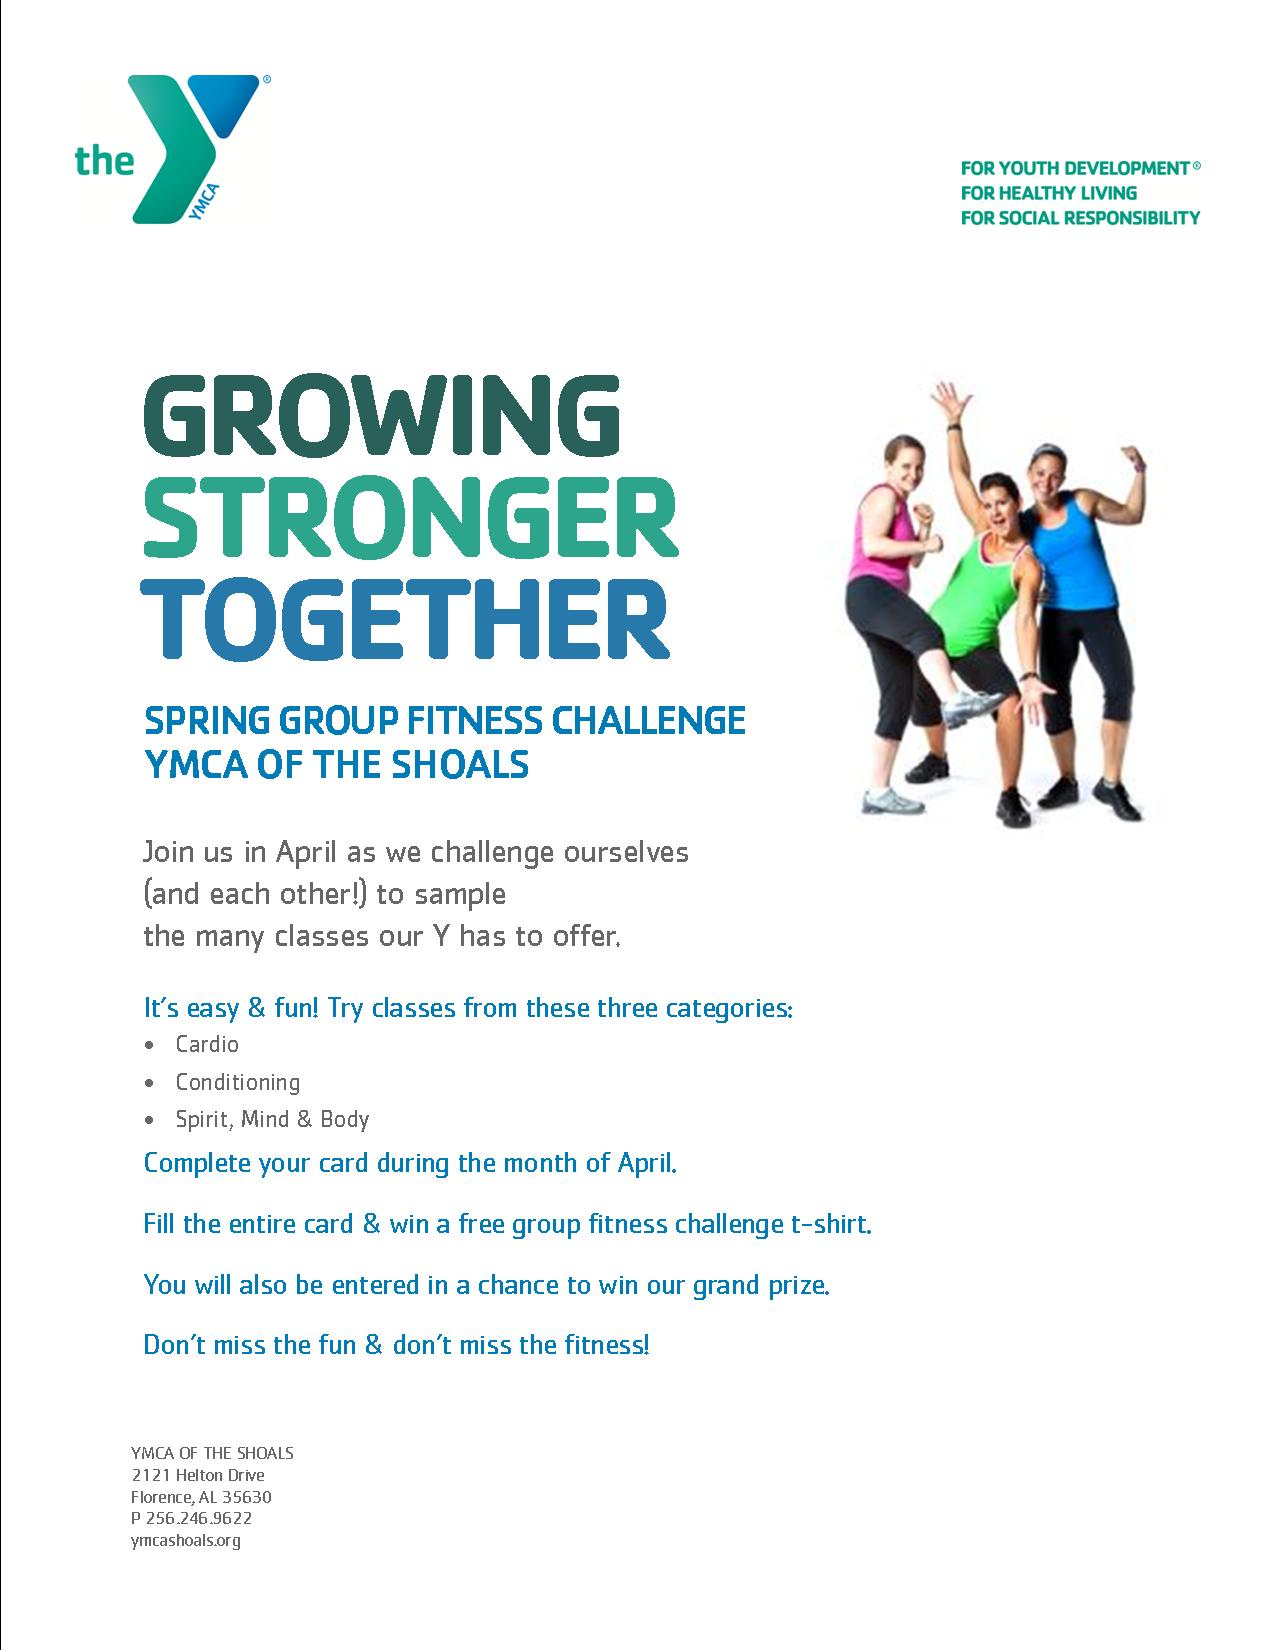 april is cardio challenge month ymca of the shoals